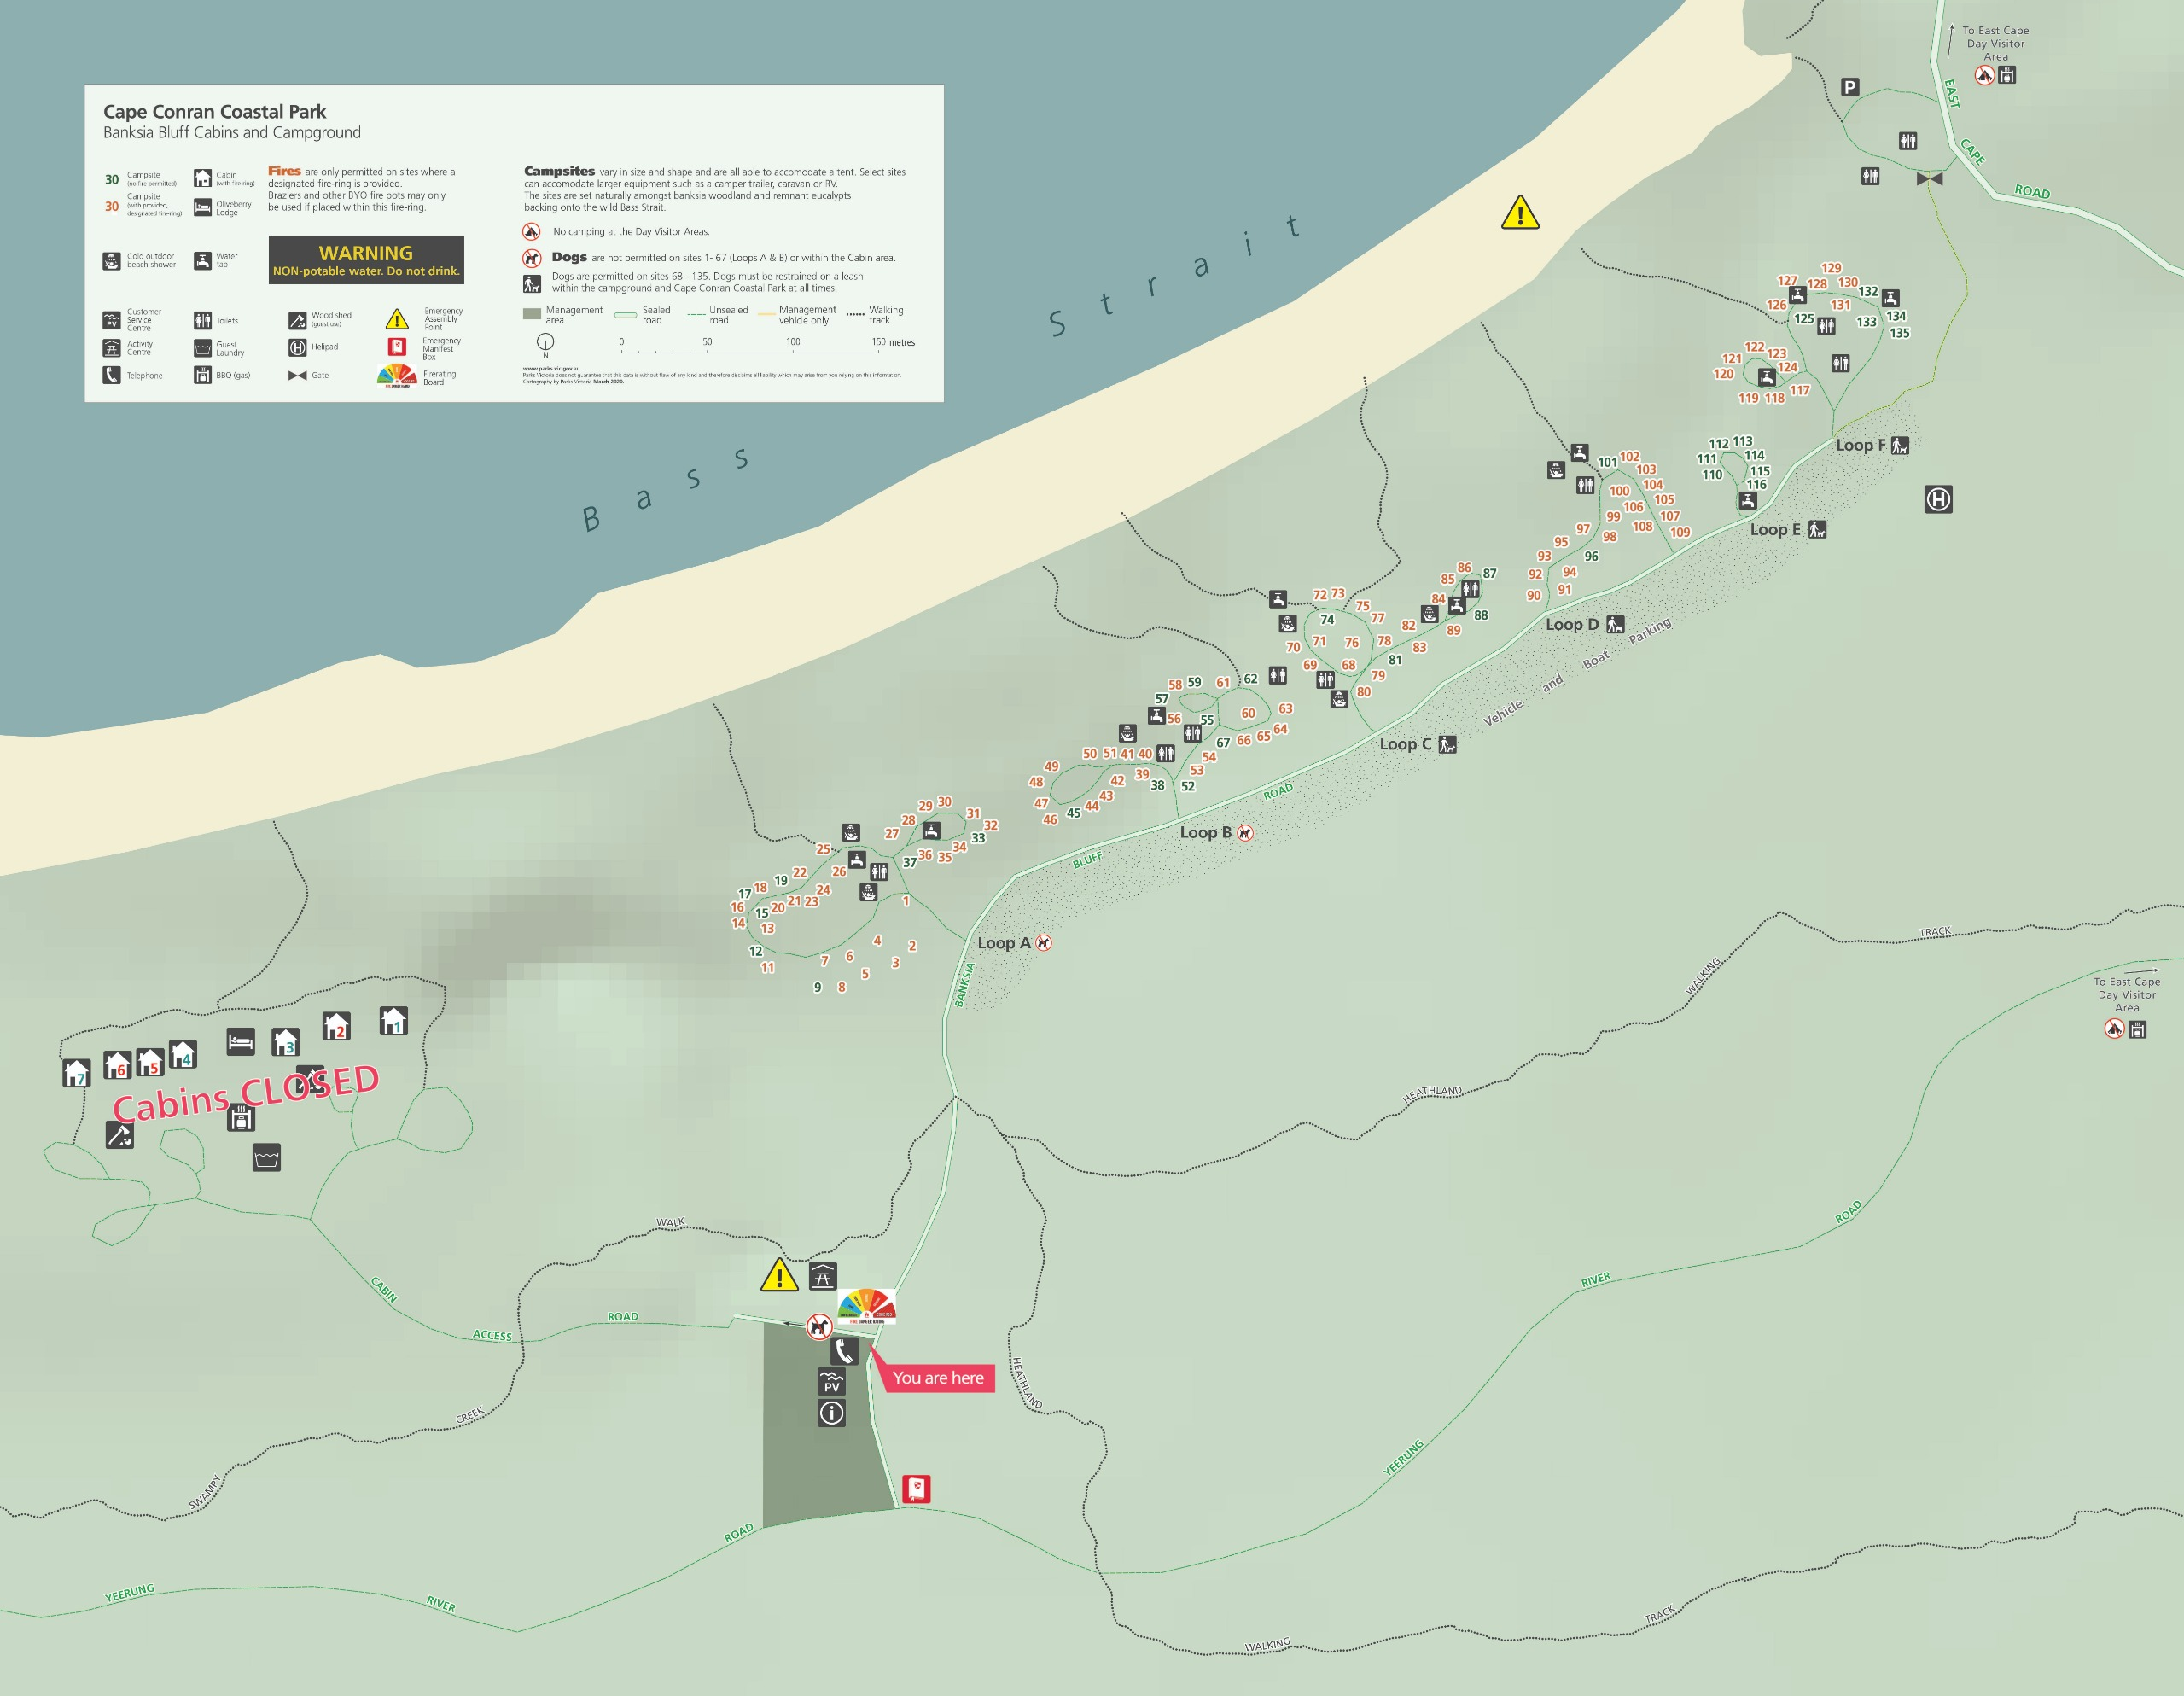 Map of Banksia Bluff Campground at Cape Conran Coastal Park